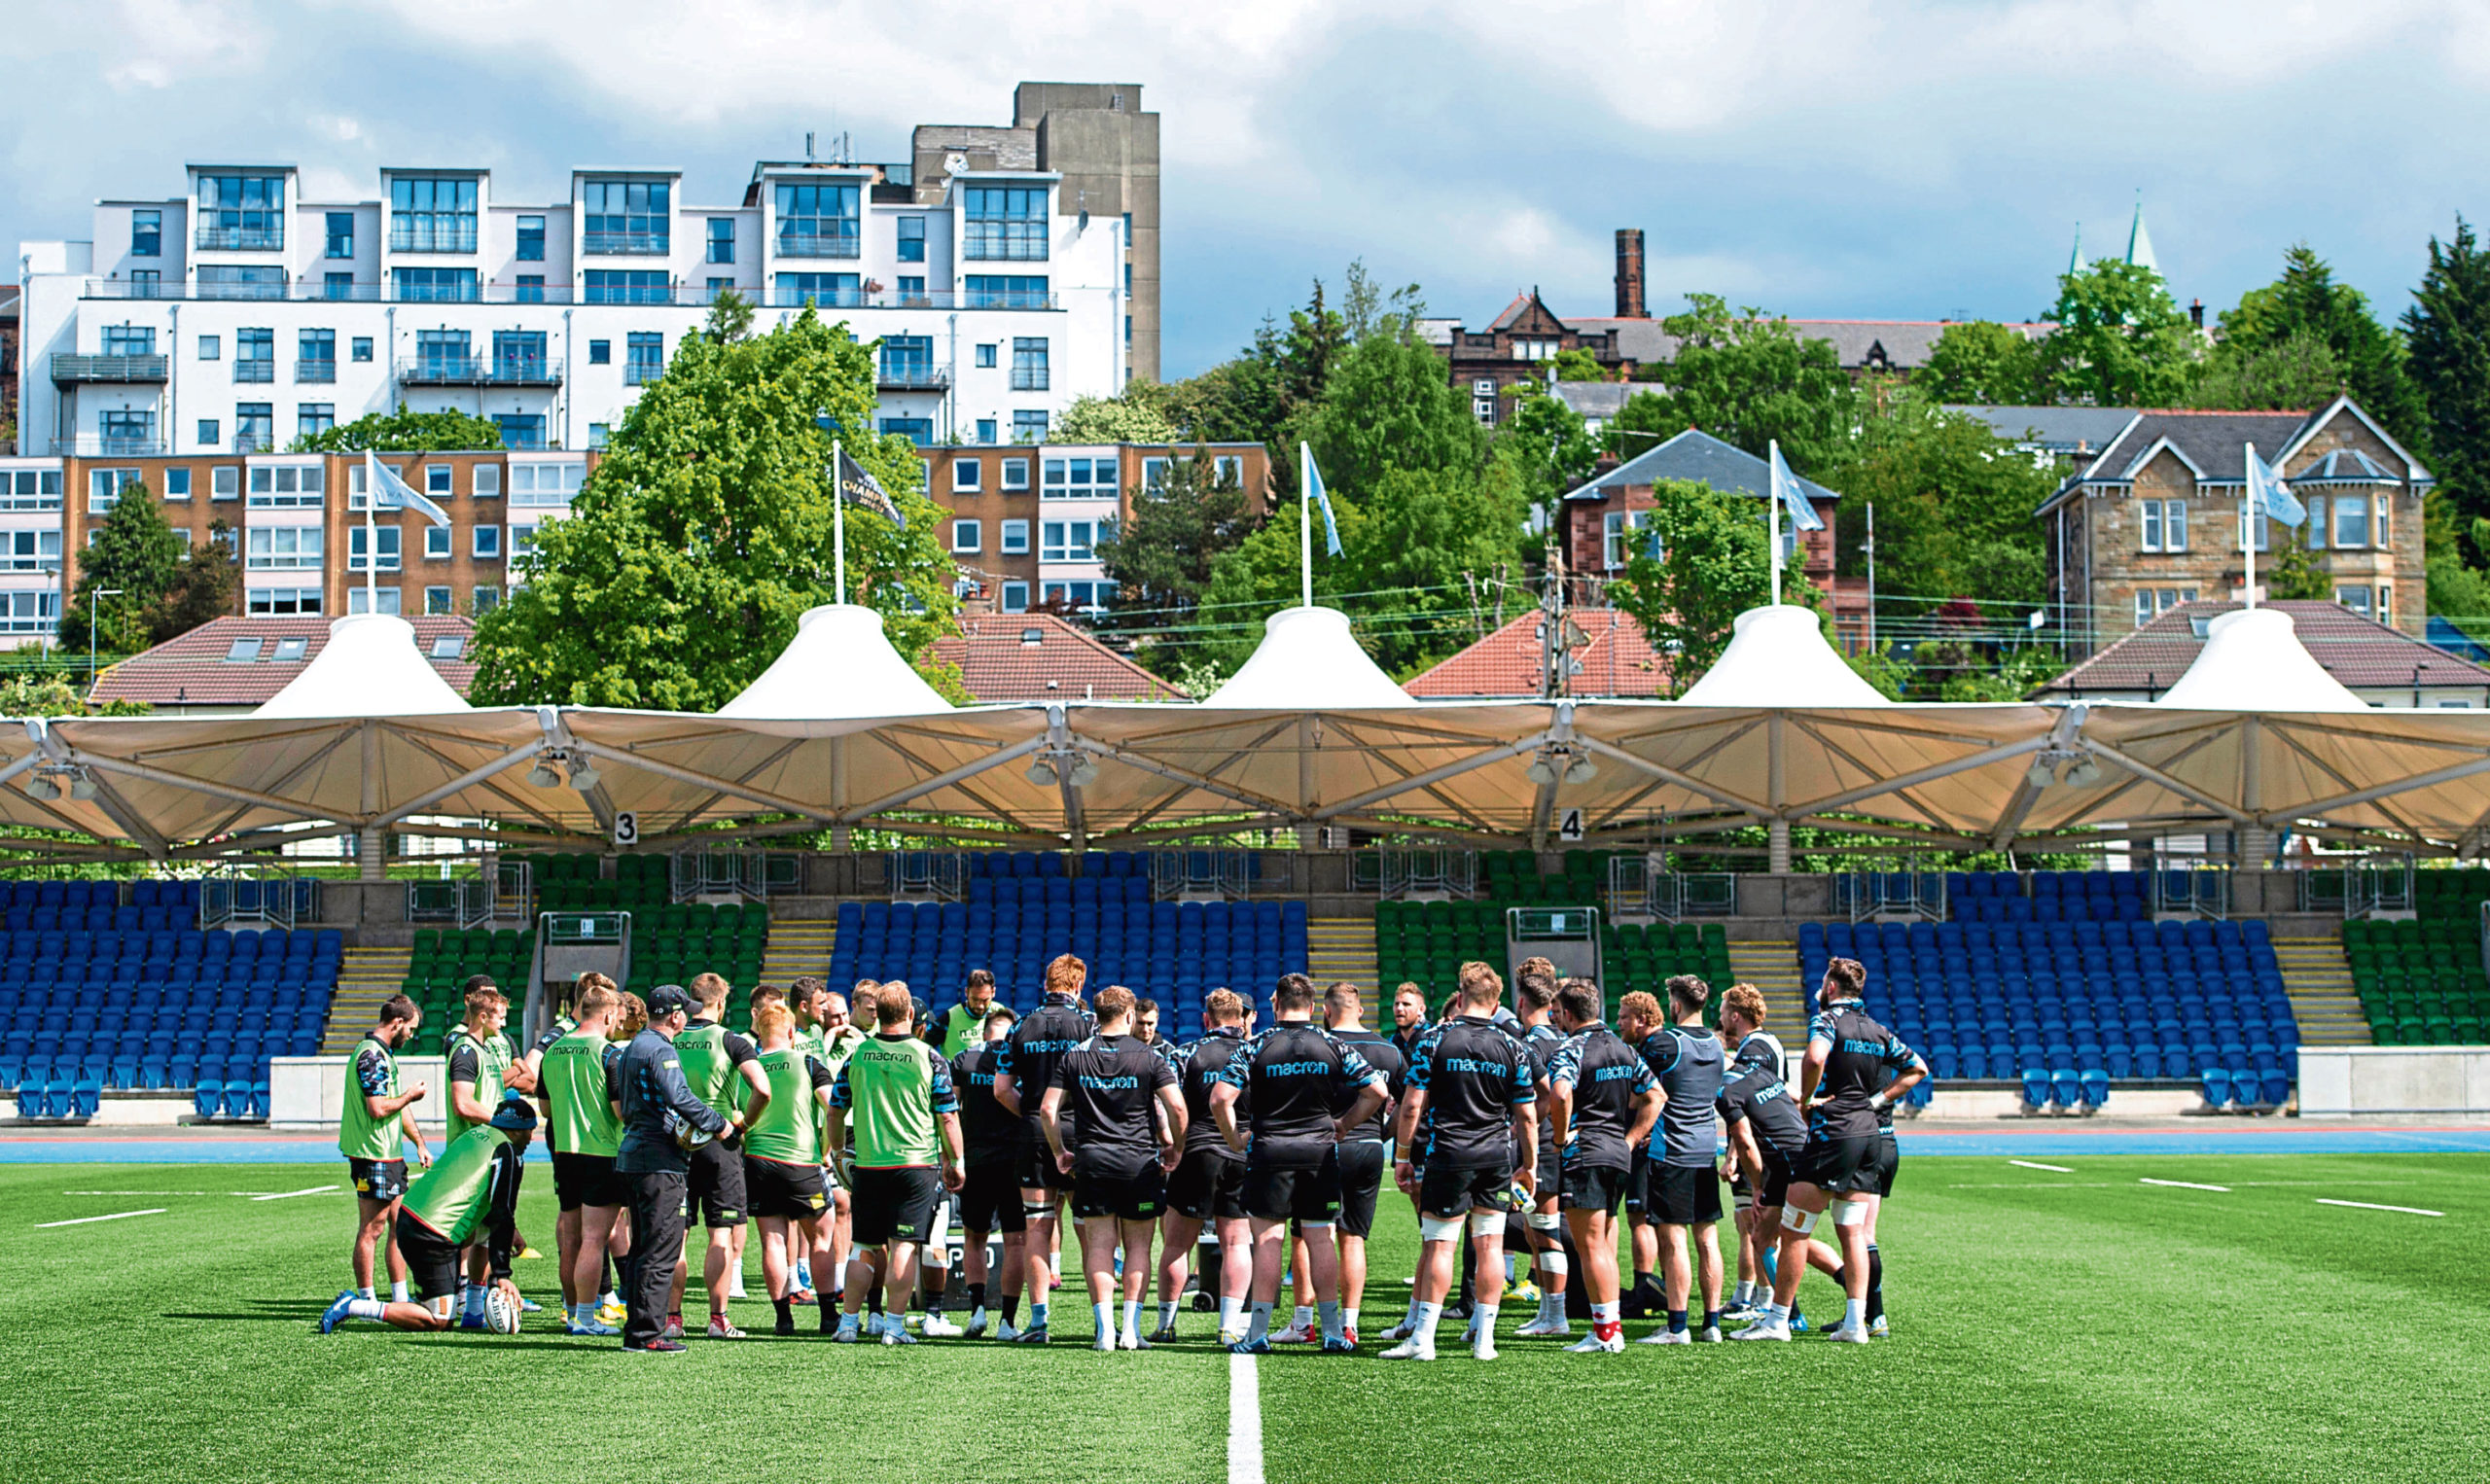 21/05/19 GLASGOW WARRIORS TRAINING SCOTSTOUN STADIUM - GLASGOW The Glasgow Warriors team huddle